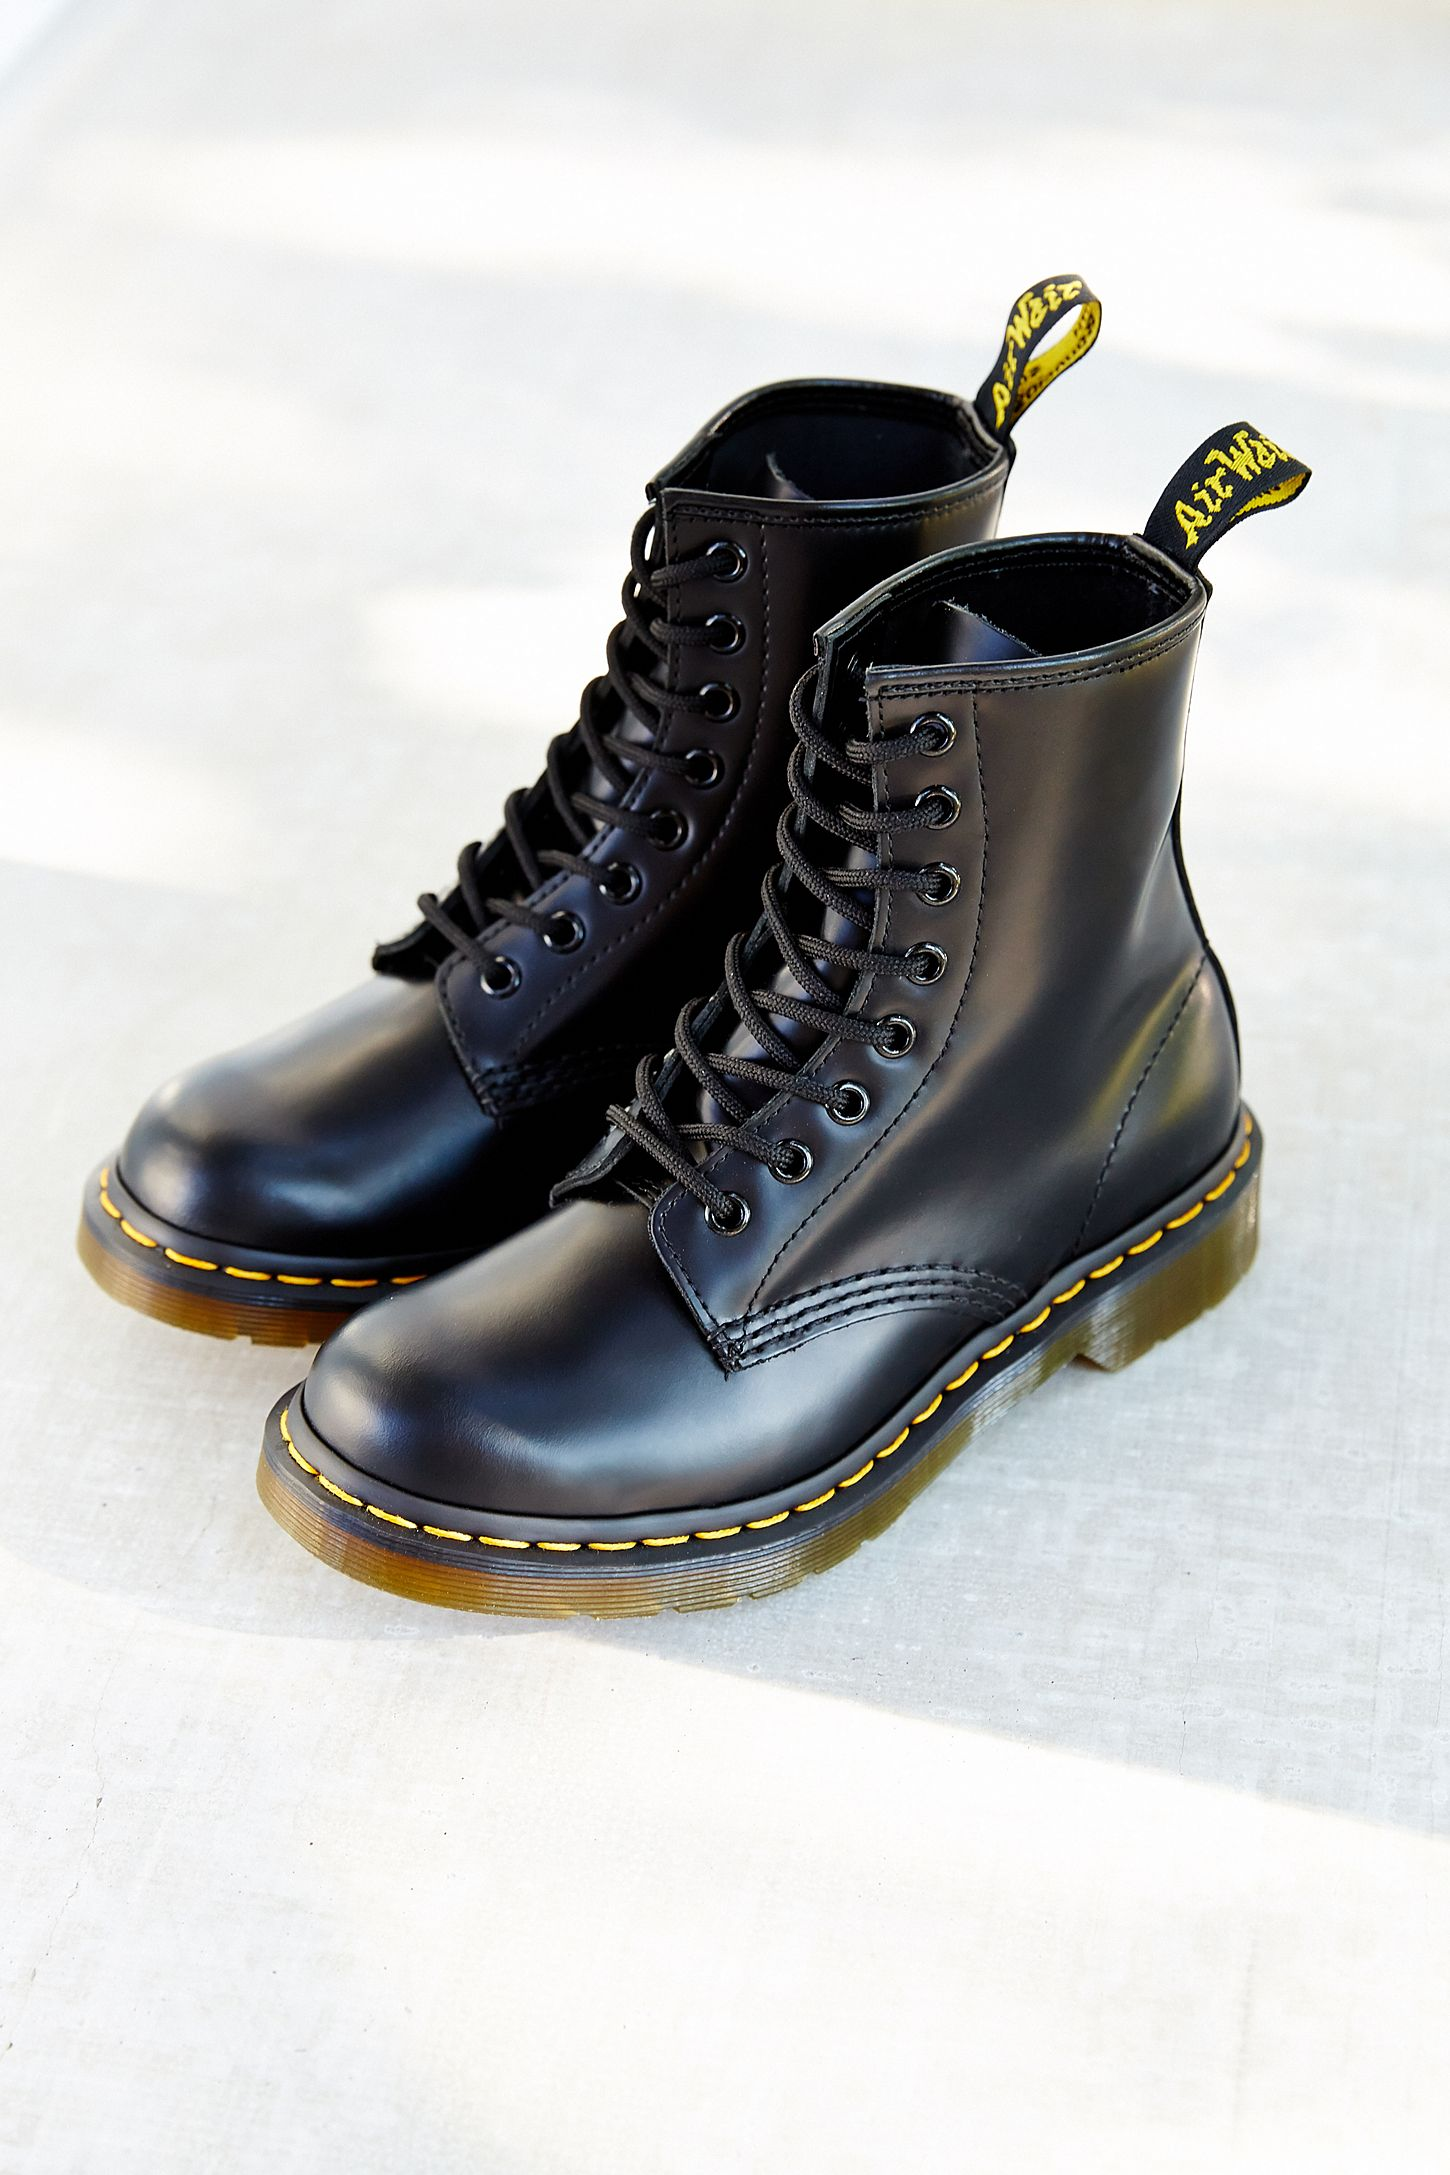 Dr. Martens 1460 Smooth Boot a92a7852c70